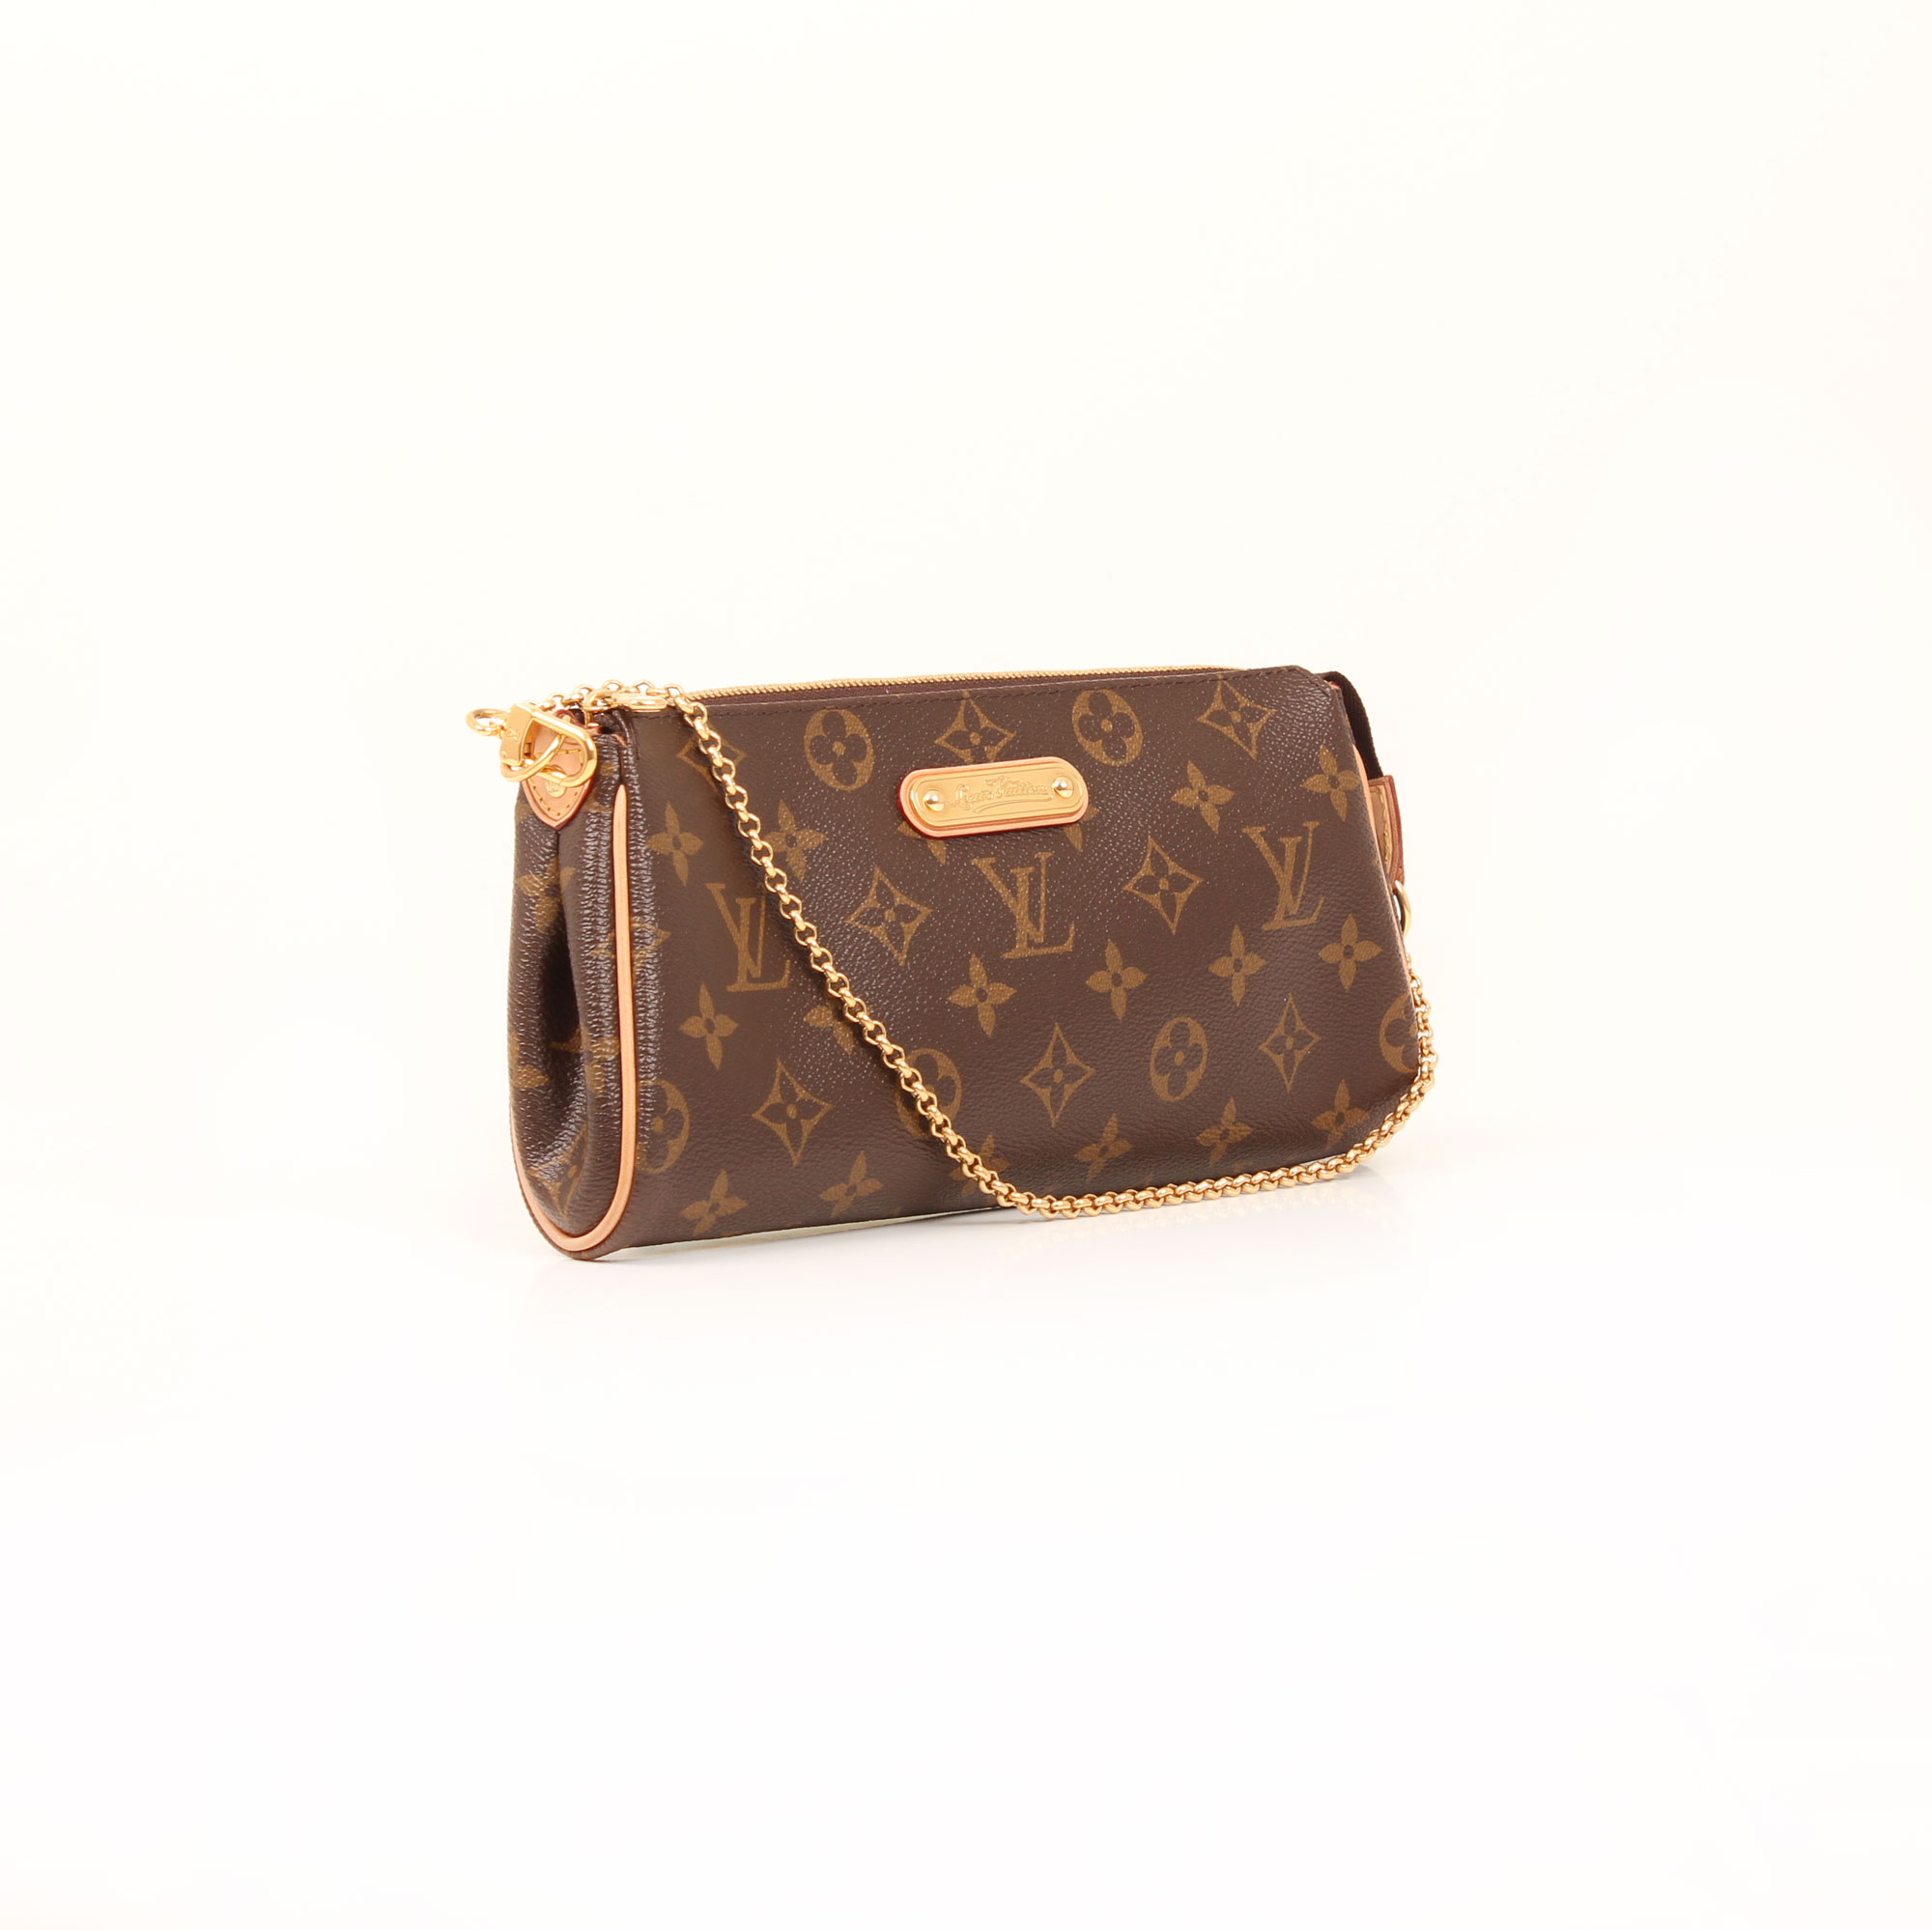 pochette-louis-vuitton-eva-monogram-general